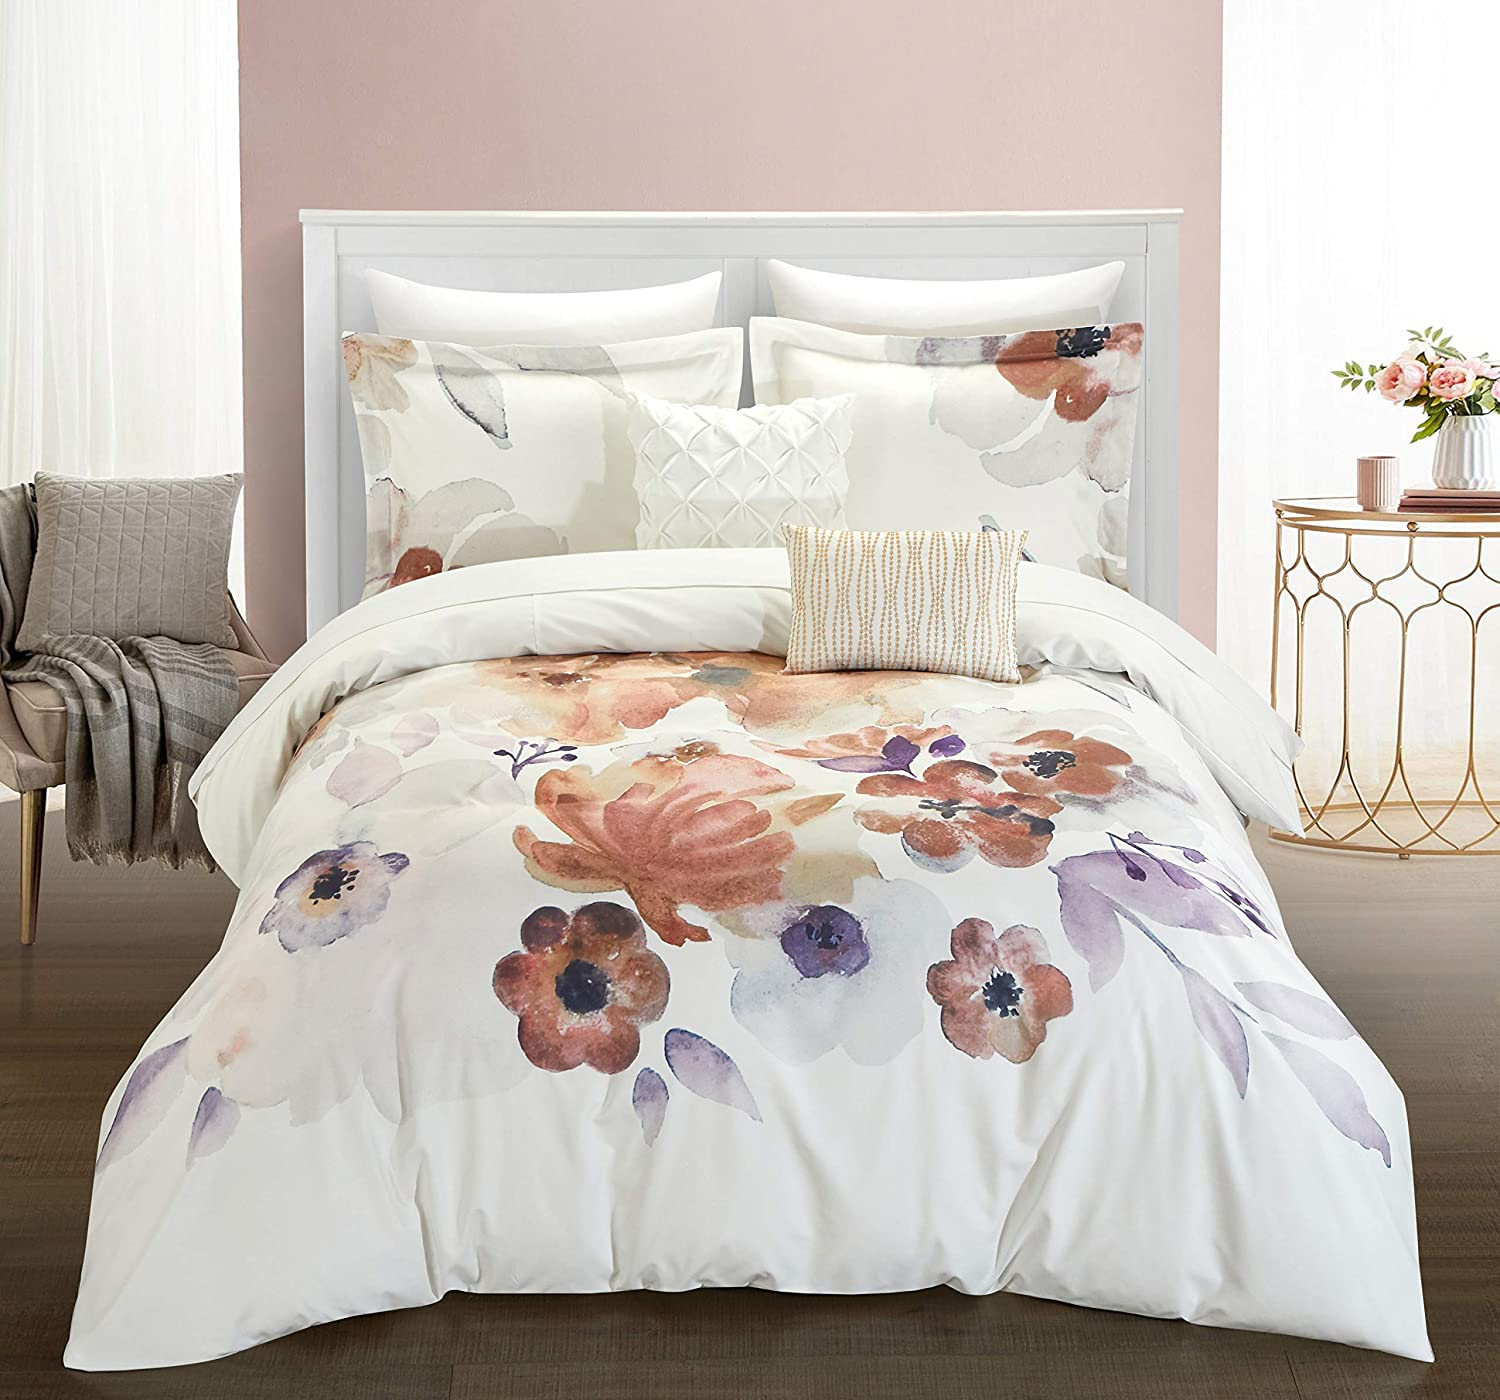 Chic Home Riverside Park 5 Piece Comforter Set Large Scale Floral Pattern Print Bedding - Decorative Pillows Shams Included, King, Multi-Color